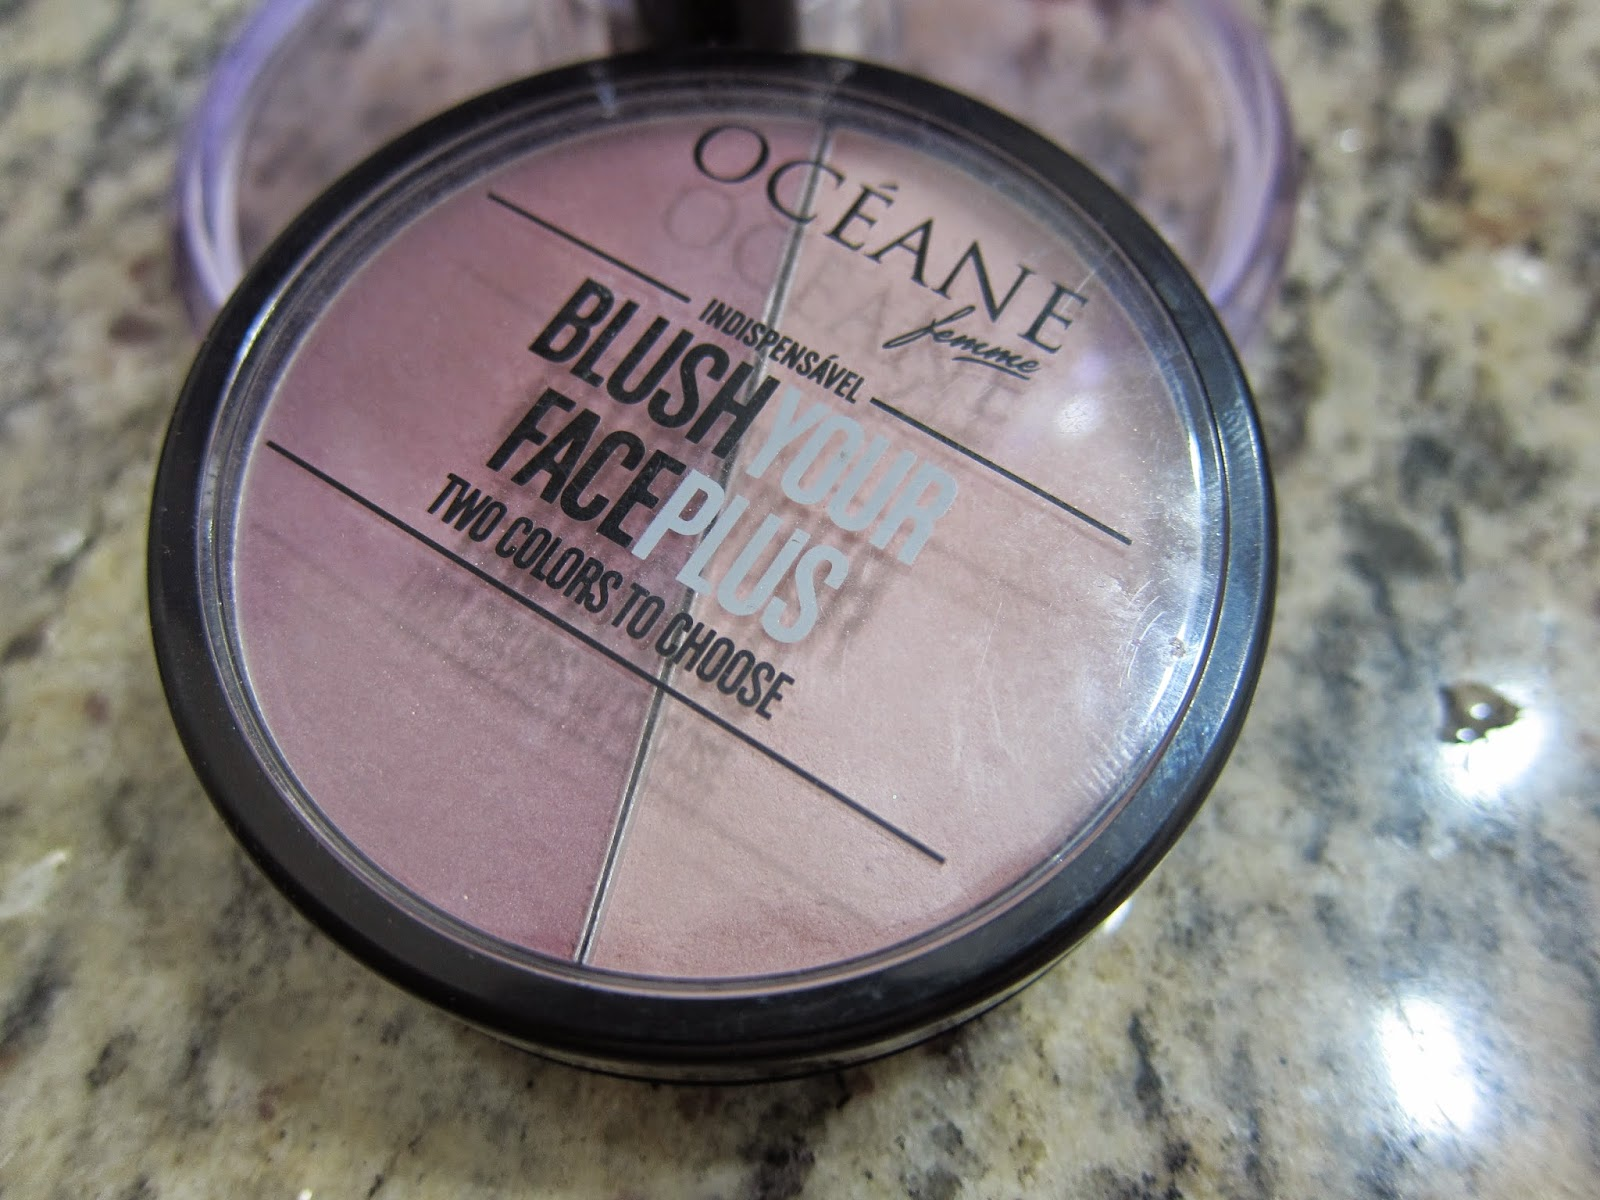 BLUSH YOUR FACE PLUS OCEANE FEMME